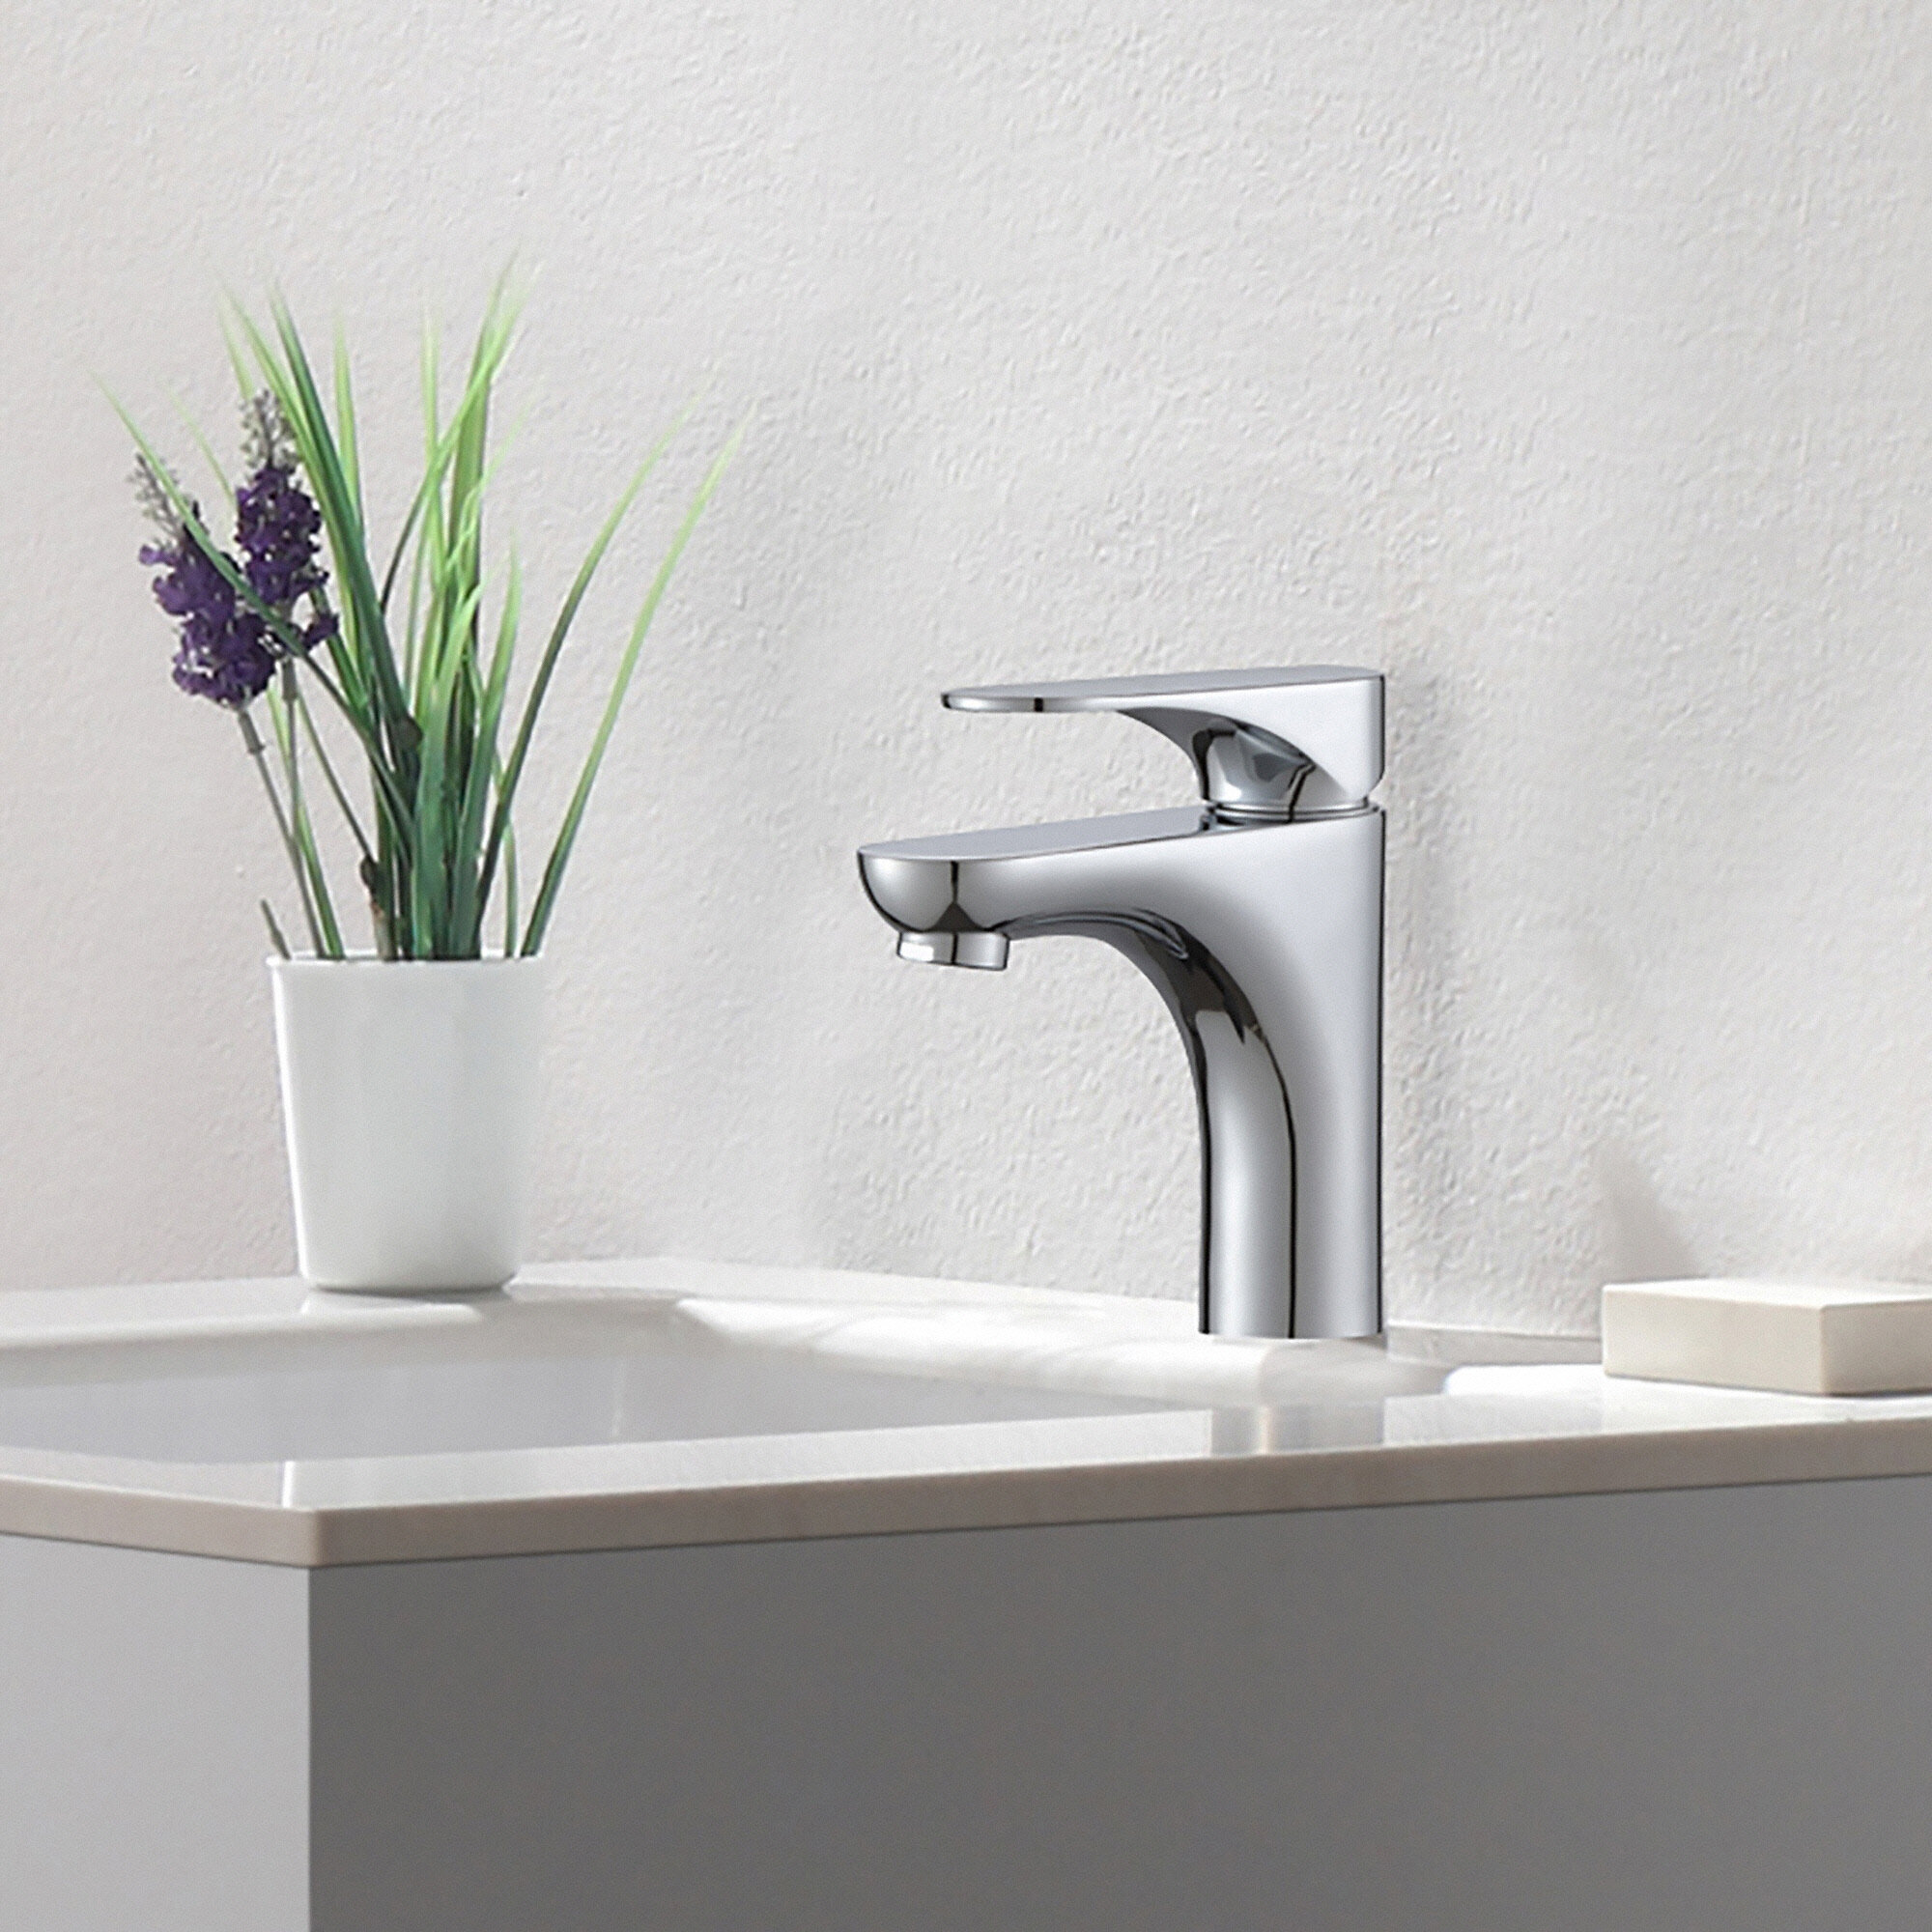 fantastical interior faucet at exterior grohe hole fresh design bathroom home single faucets furniture decor